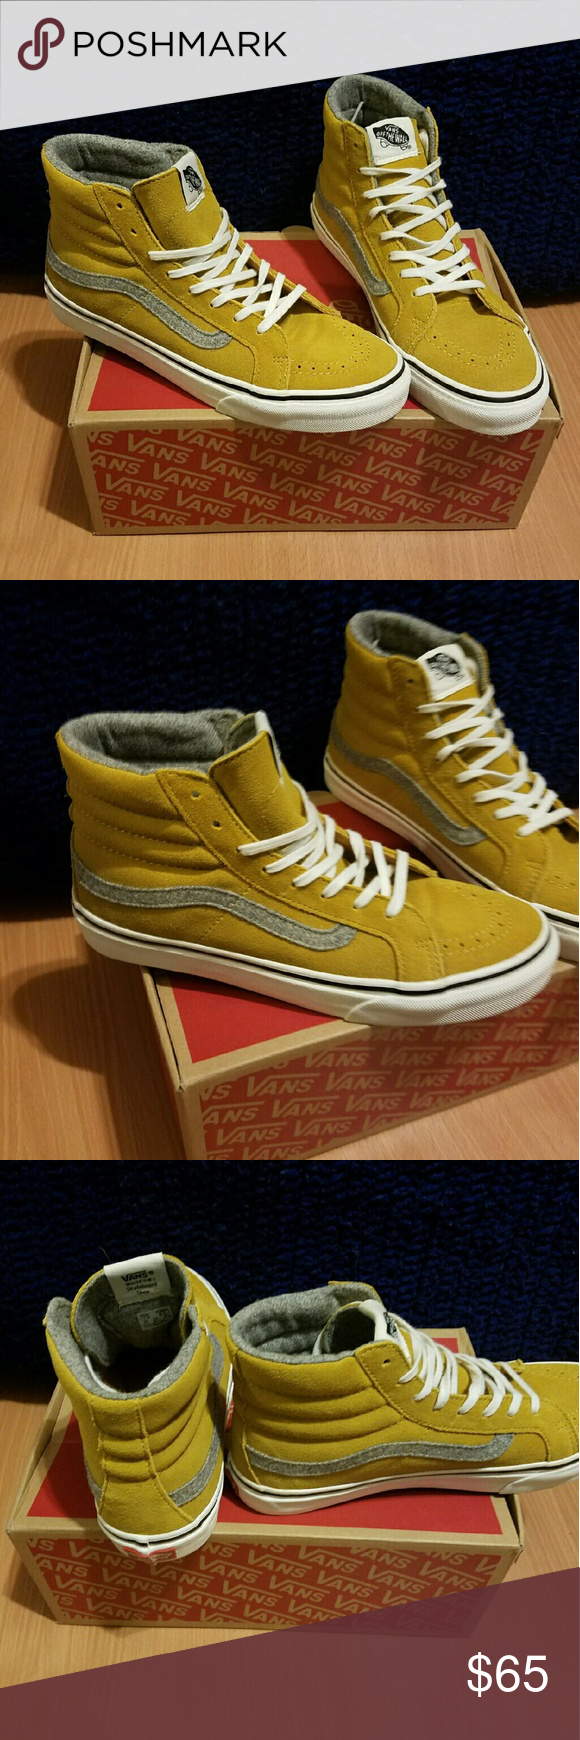 2d1417c2f1 NWBOX Sk8 Hi Slim Vintage Suede in Amber Gold New with Box Sk8 Hi Slim  Vintage Suede in Amber Gold. Never worn. Rad suede gold outside with grey  Vans logo ...